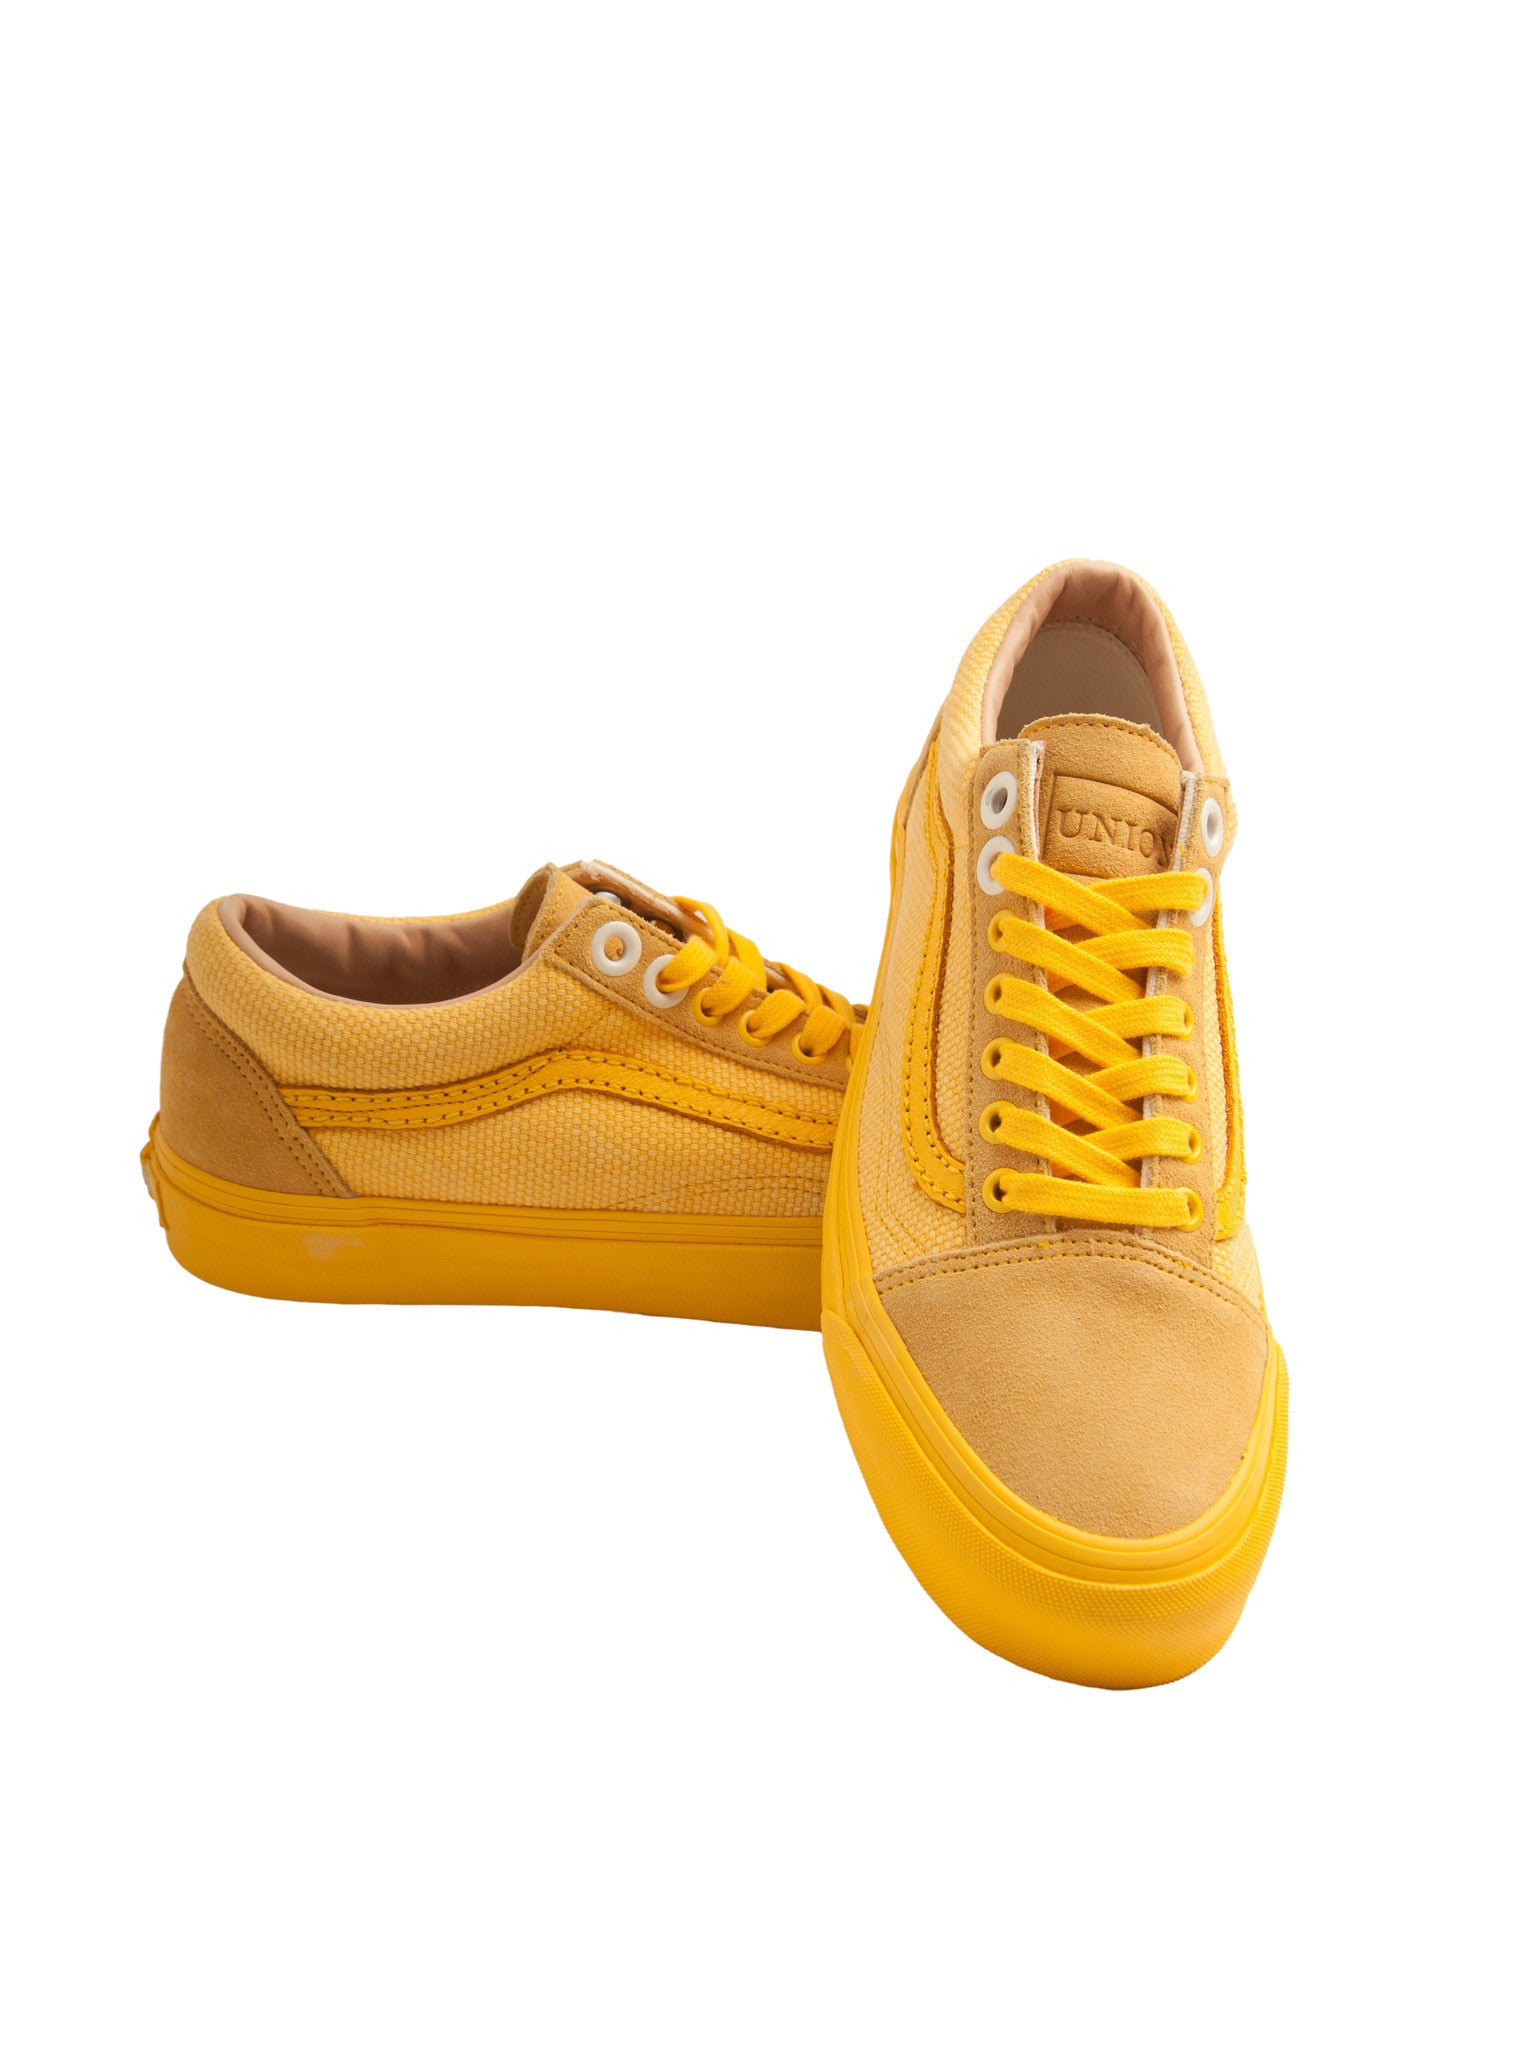 Citrus Vans Vault Old Skool (UNION) - Citrus 4